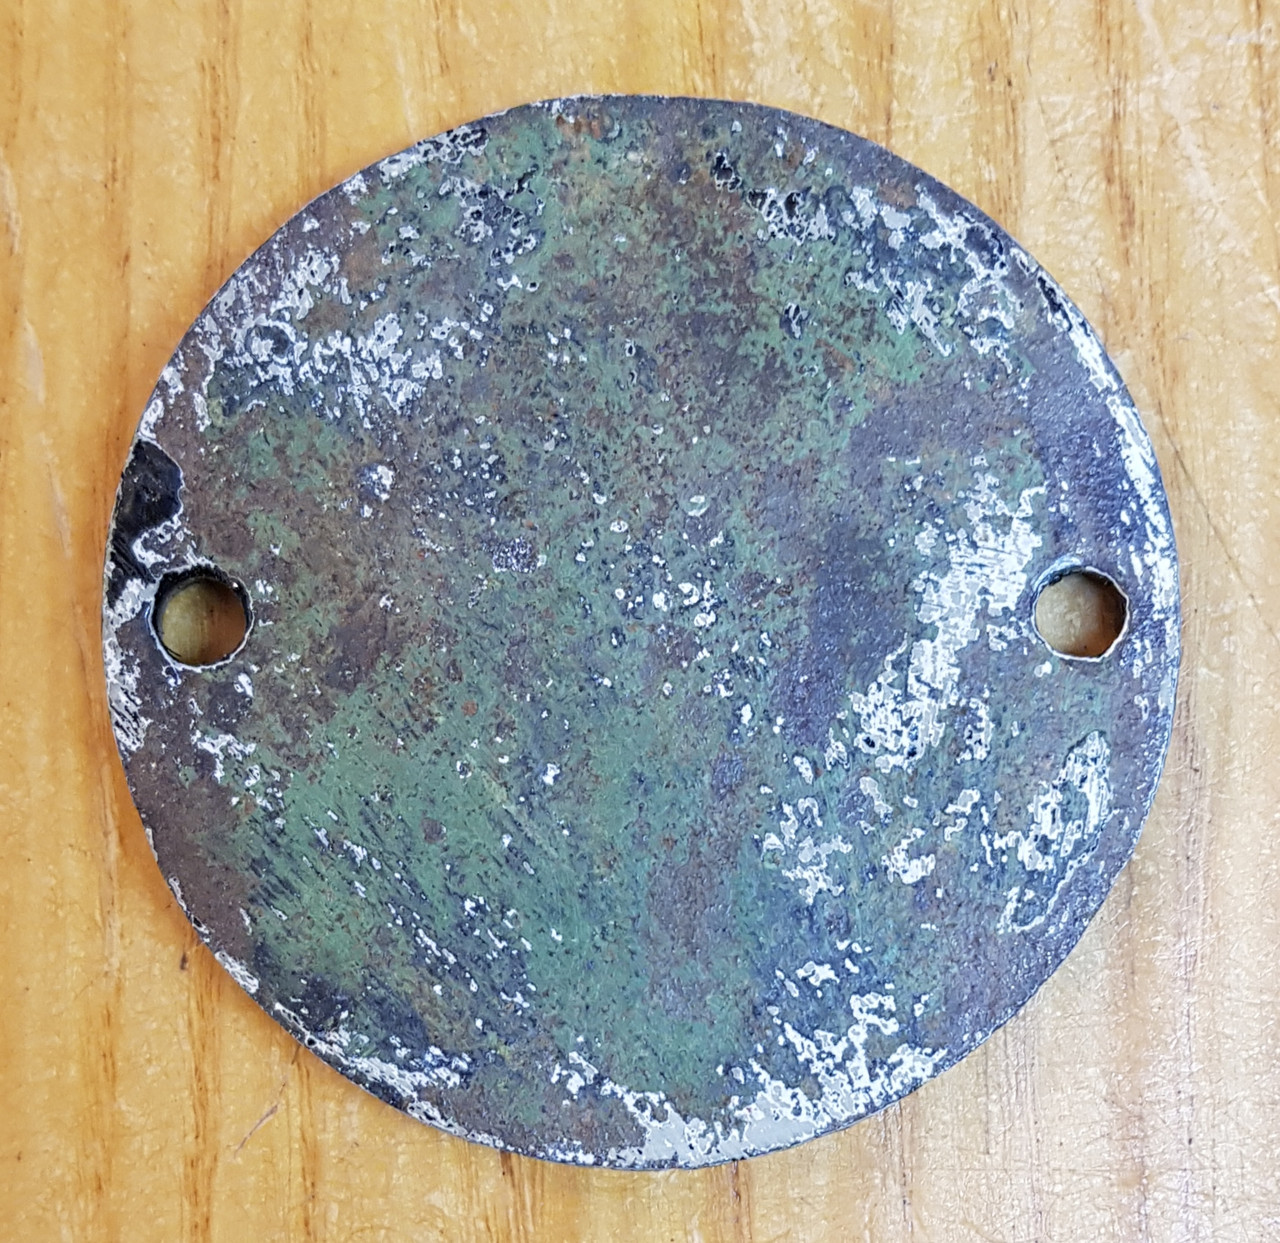 VT 2524.  G.R.S. GENERAL RAILWAY SIGNAL COMPANY MAKERS PLATE.